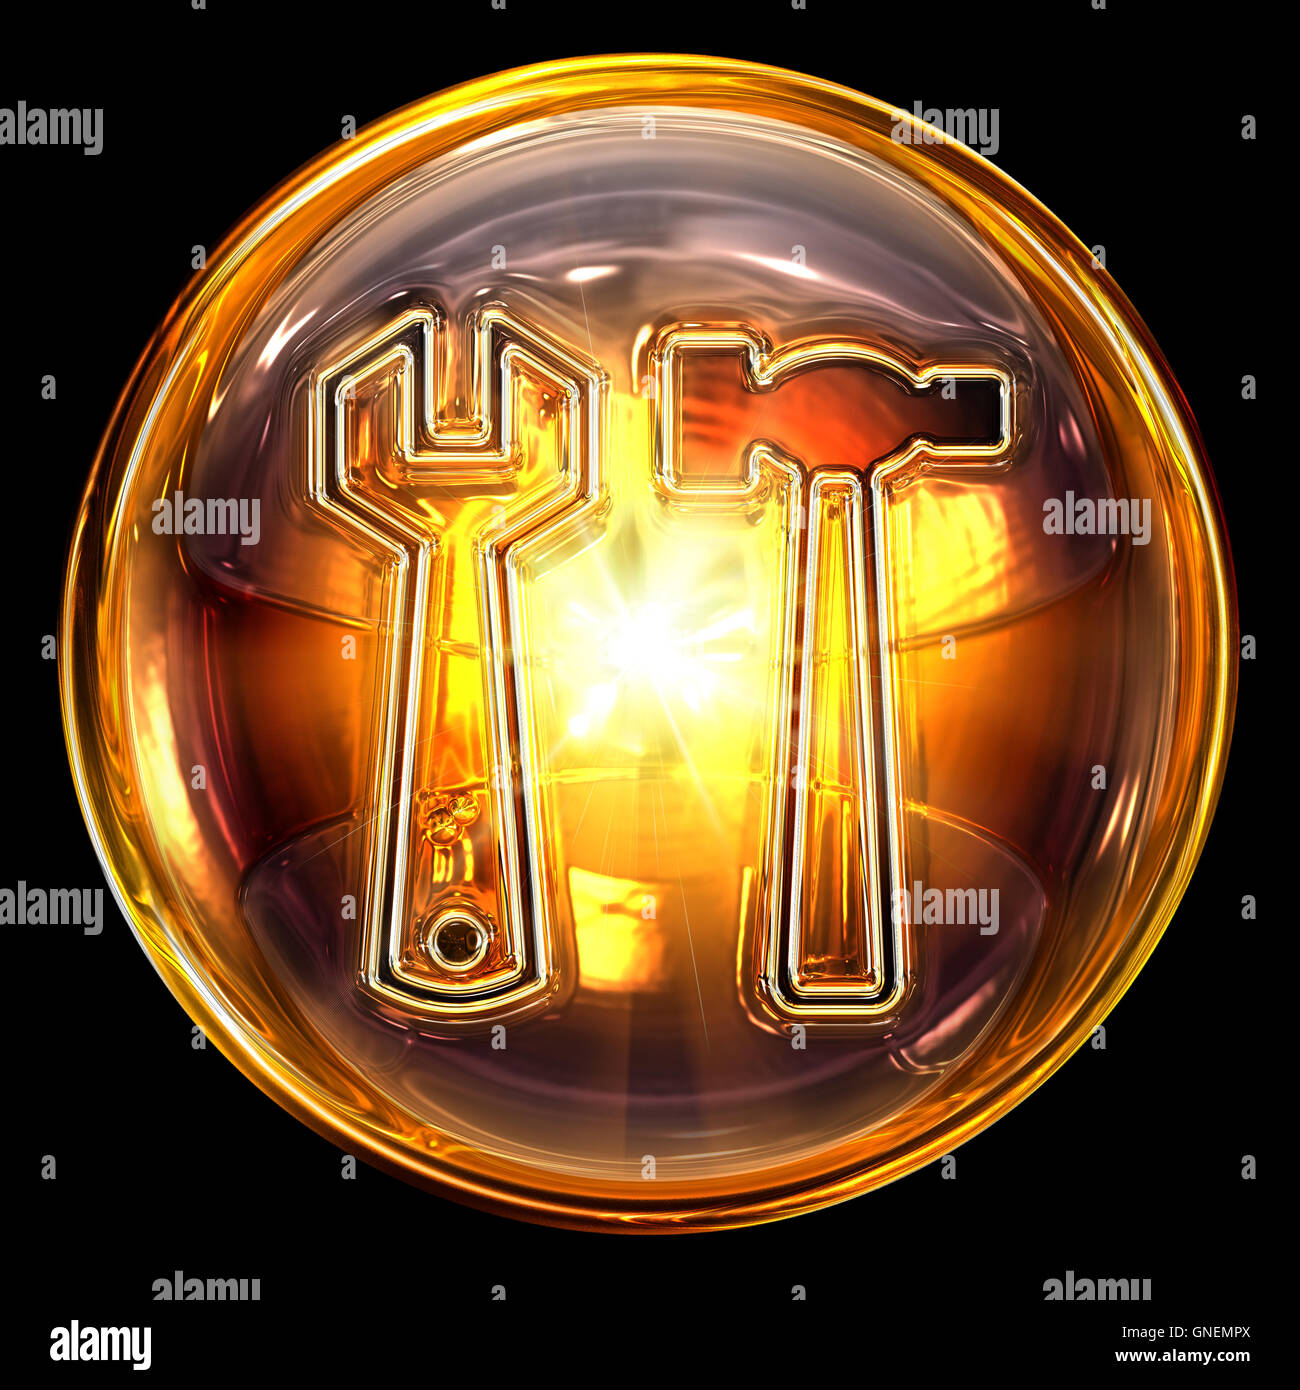 Tools icon fire, isolated on black background - Stock Image